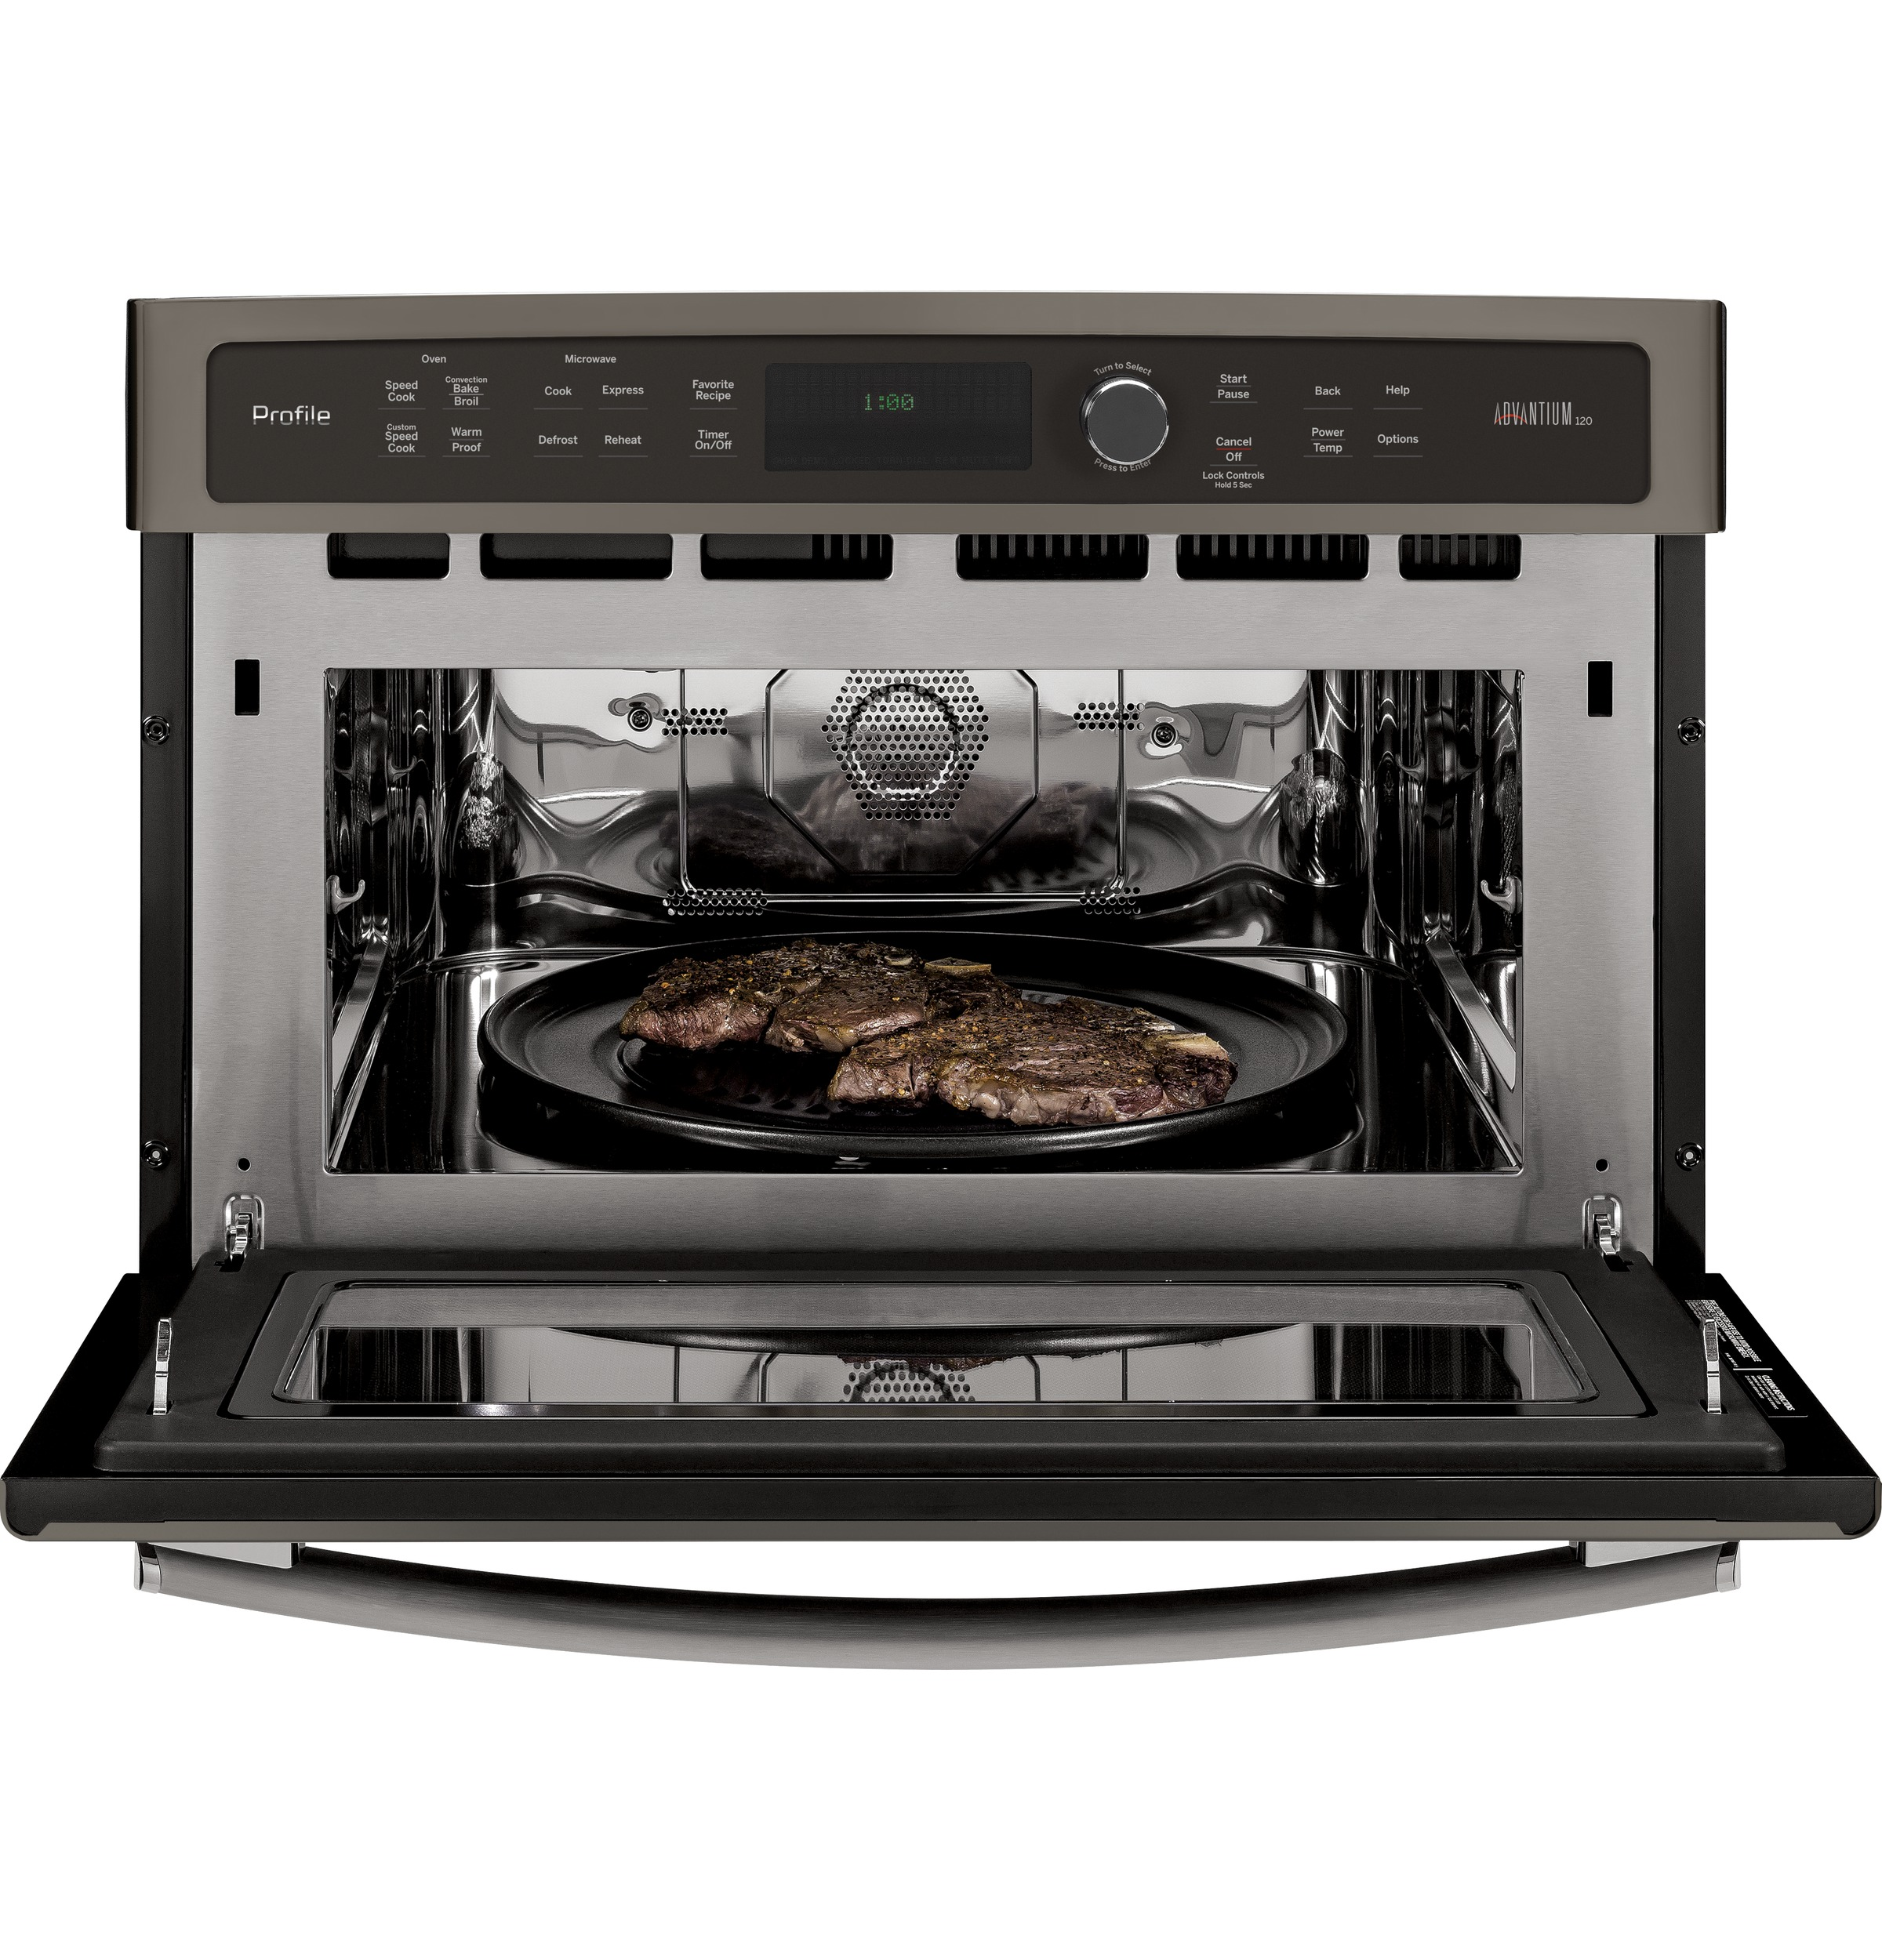 Model: PSB9100EFES | GE Profile GE Profile™ Series 27 in. Single Wall Oven Advantium® Technology